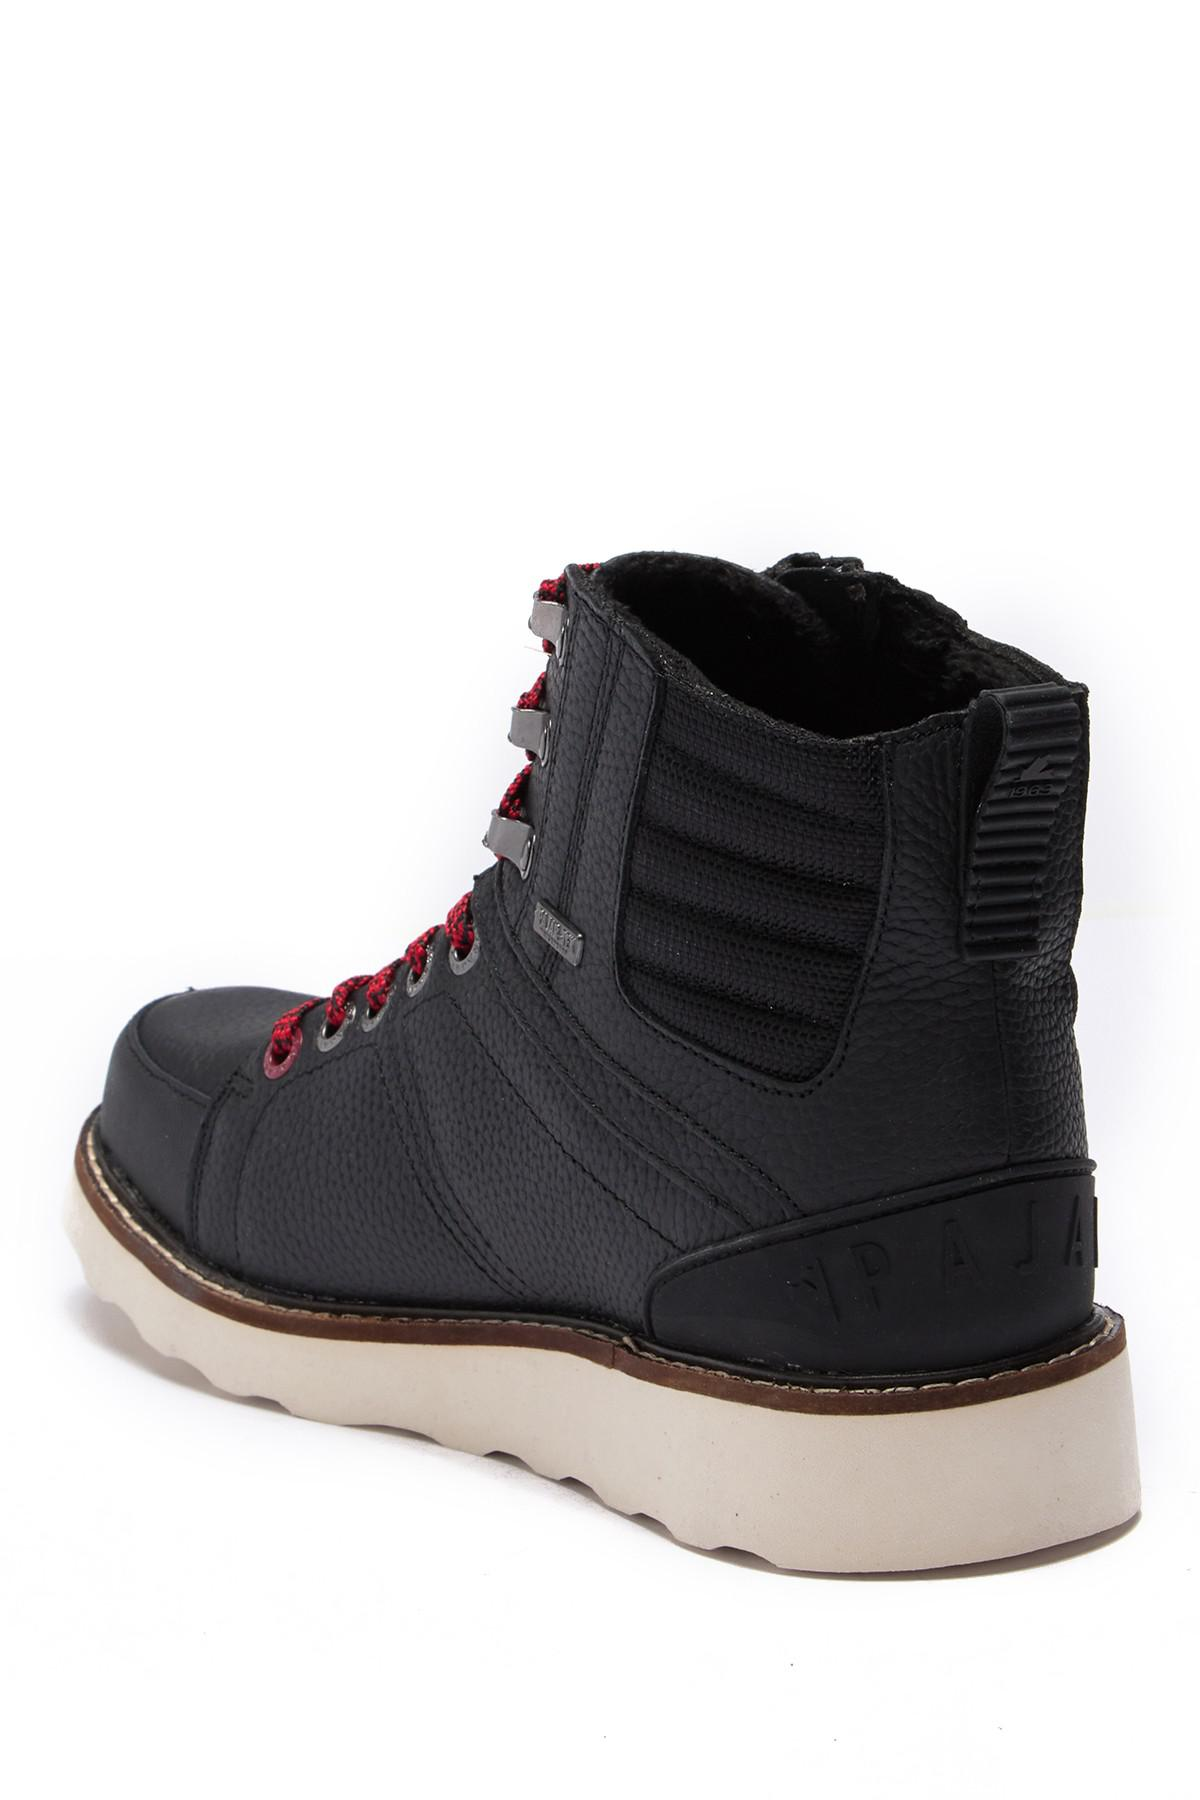 d9b91294e32 Pajar - Black Reigh Leather   Faux Wool Hi-top Boot for Men - Lyst. View  fullscreen